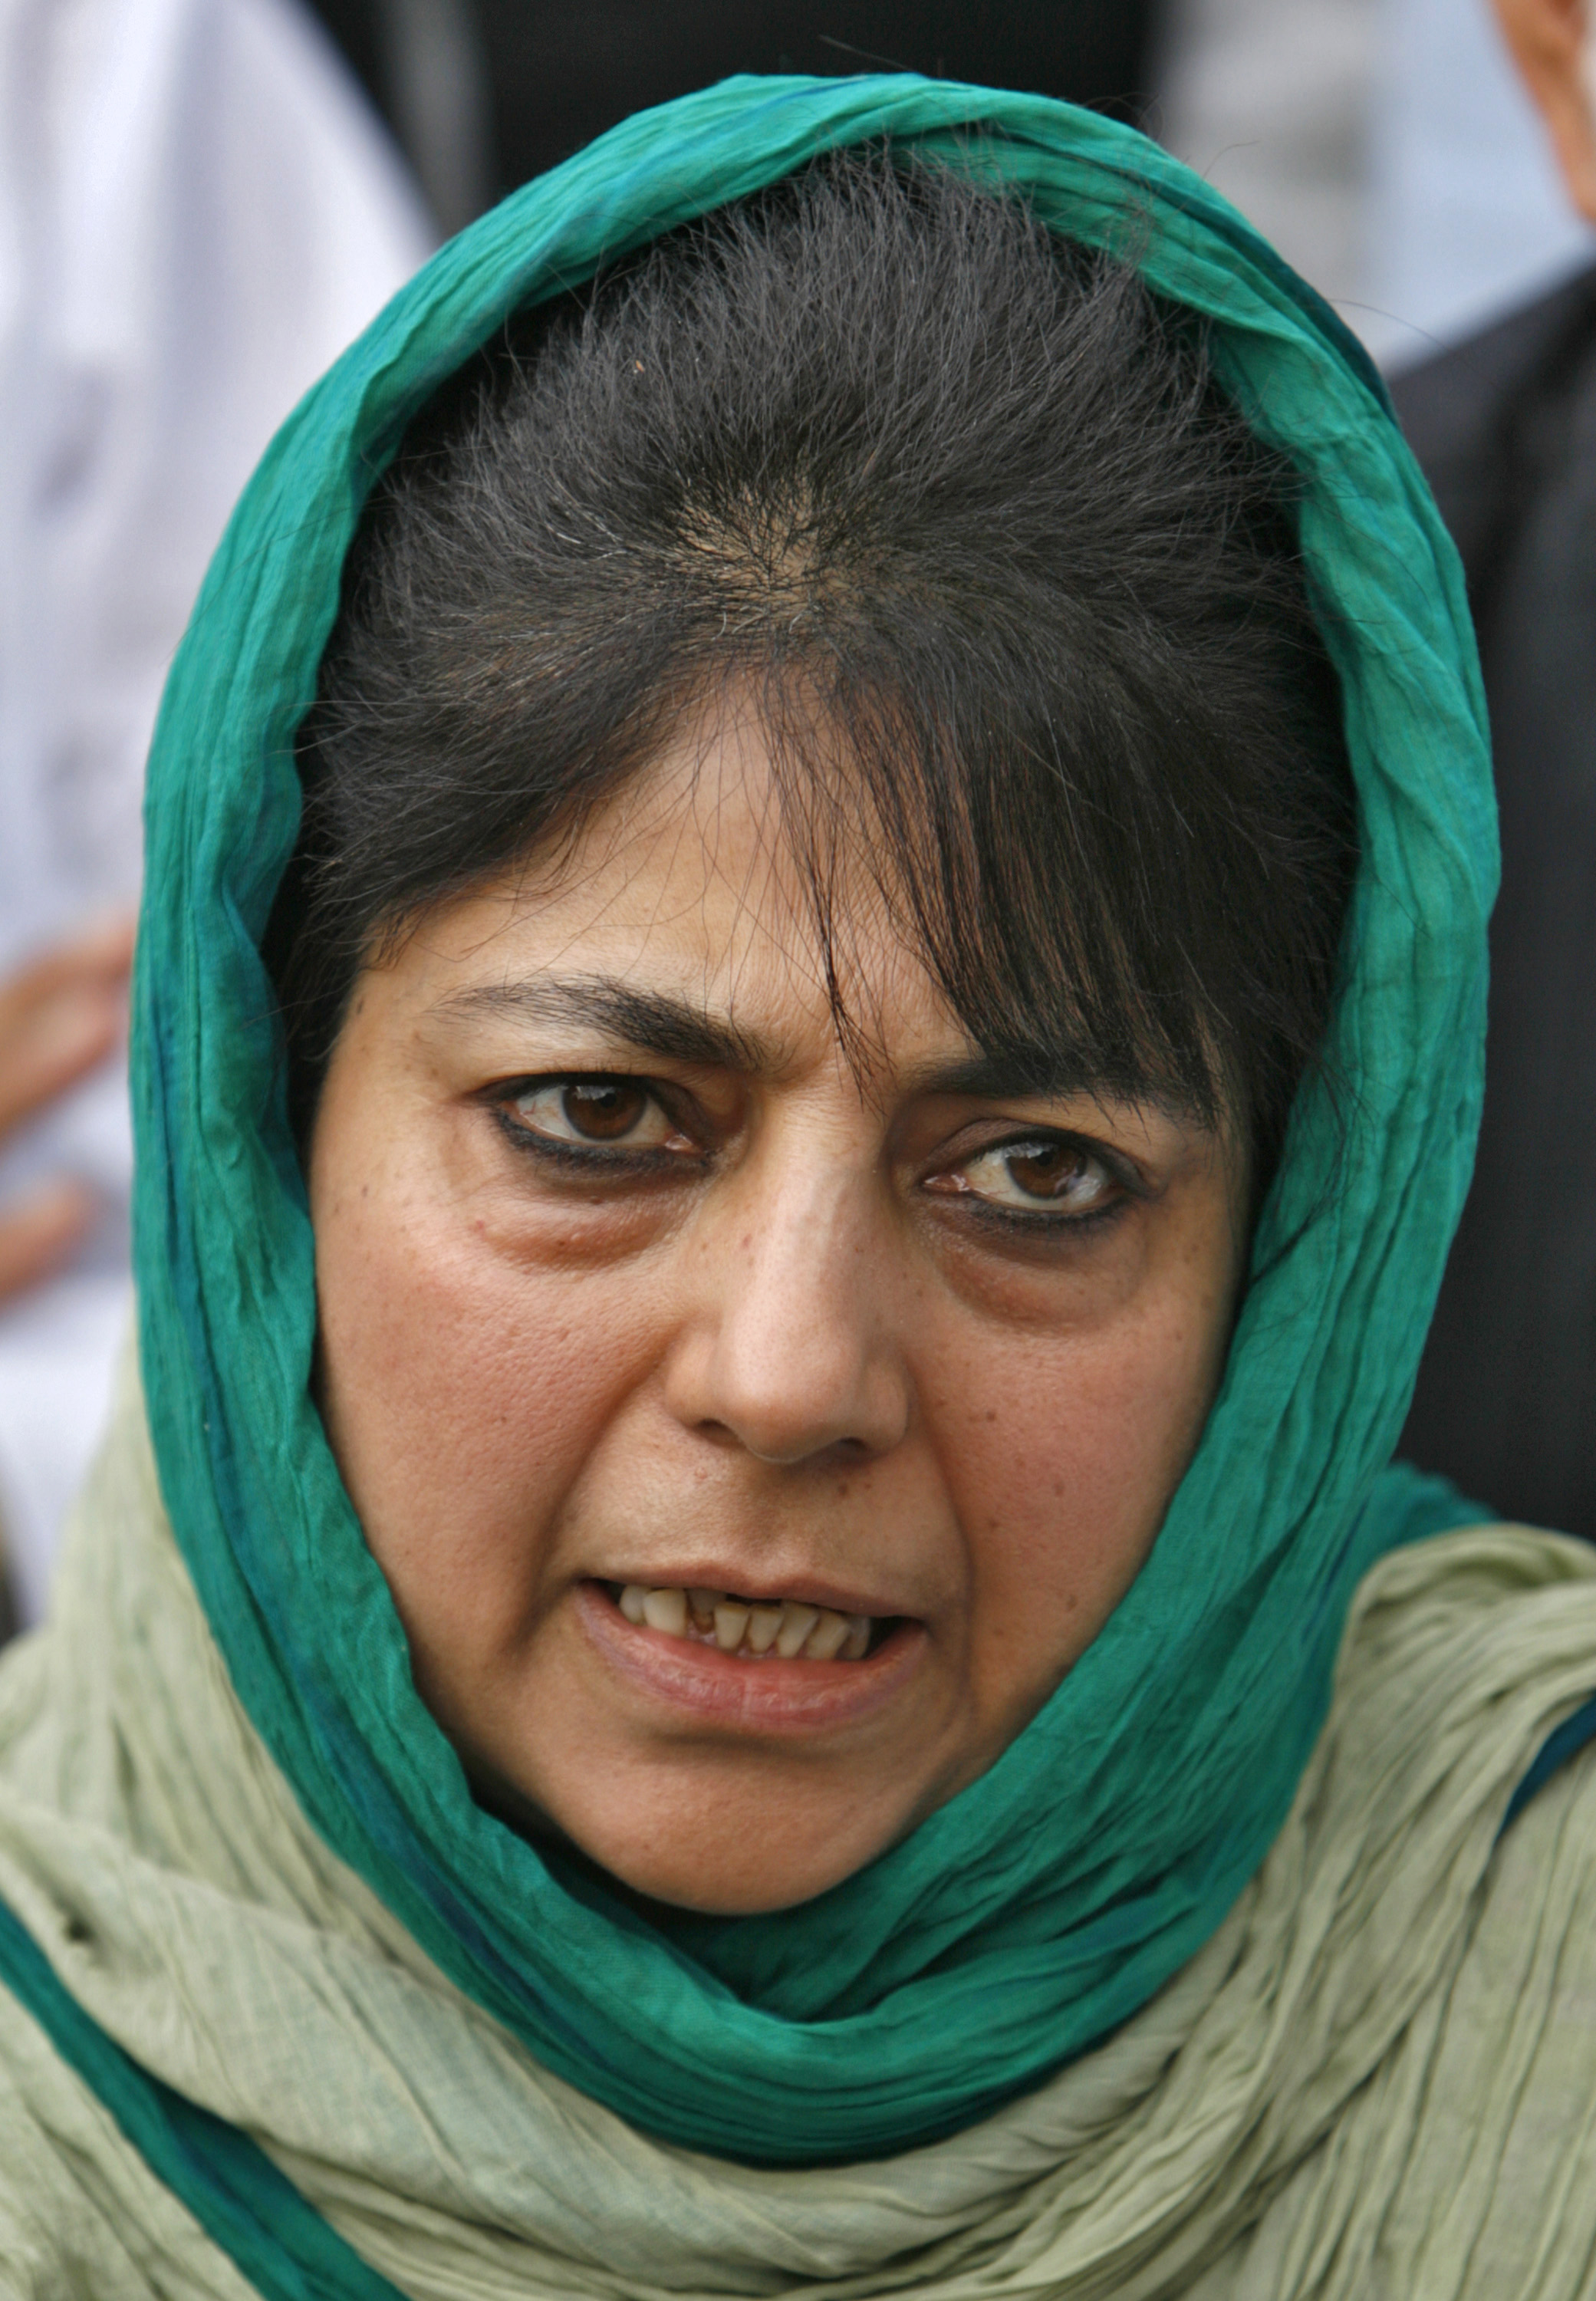 Mehbooba Mufti, chief of People's Democratic Party (PDP), addresses a news conference in Srinagar June 28, 2008. Mehbooba announced the withdrawal of her party's support from the coalition government, over a decision to transfer forest land to a Hindu shrine trust in Indian-administered Kashmir. Authorities transferred nearly 100 acres (40 hectares) of forest land in Kashmir to the Shri Amarnathji Shrine Board, a Hindu trust, to erect temporary shelters for thousands of Hindu pilgrims who annually trek to a cave shrine in the mountains.  REUTERS/Fayaz Kabli     (INDIAN-ADMINISTERED KASHMIR) - RTX7FJ1